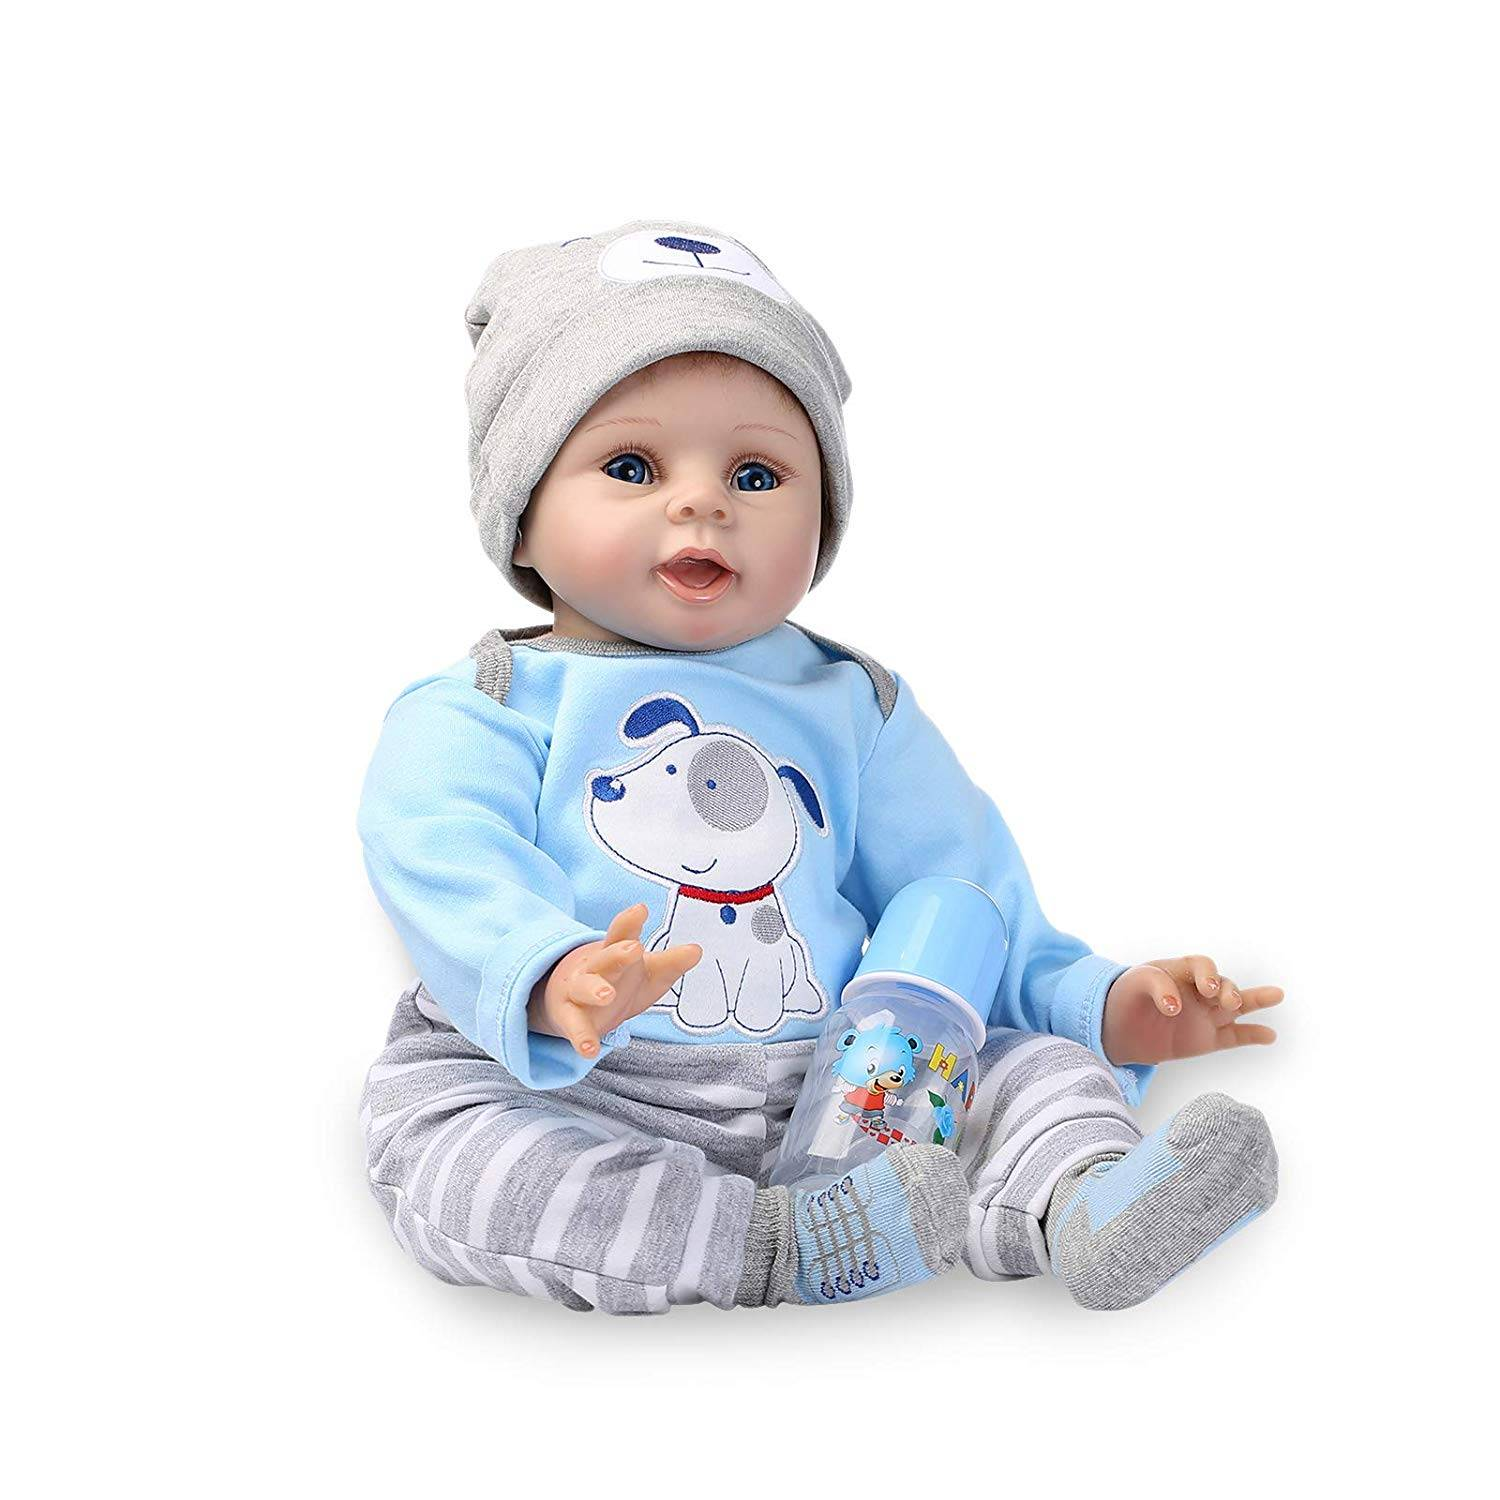 Top Suppliers Realistic Baby Doll - Reborn Baby Doll Soft Simulation Silicone Vinyl Cloth Body 22inch 55cm Lifelike Boy Girl Toy  – Geshuo